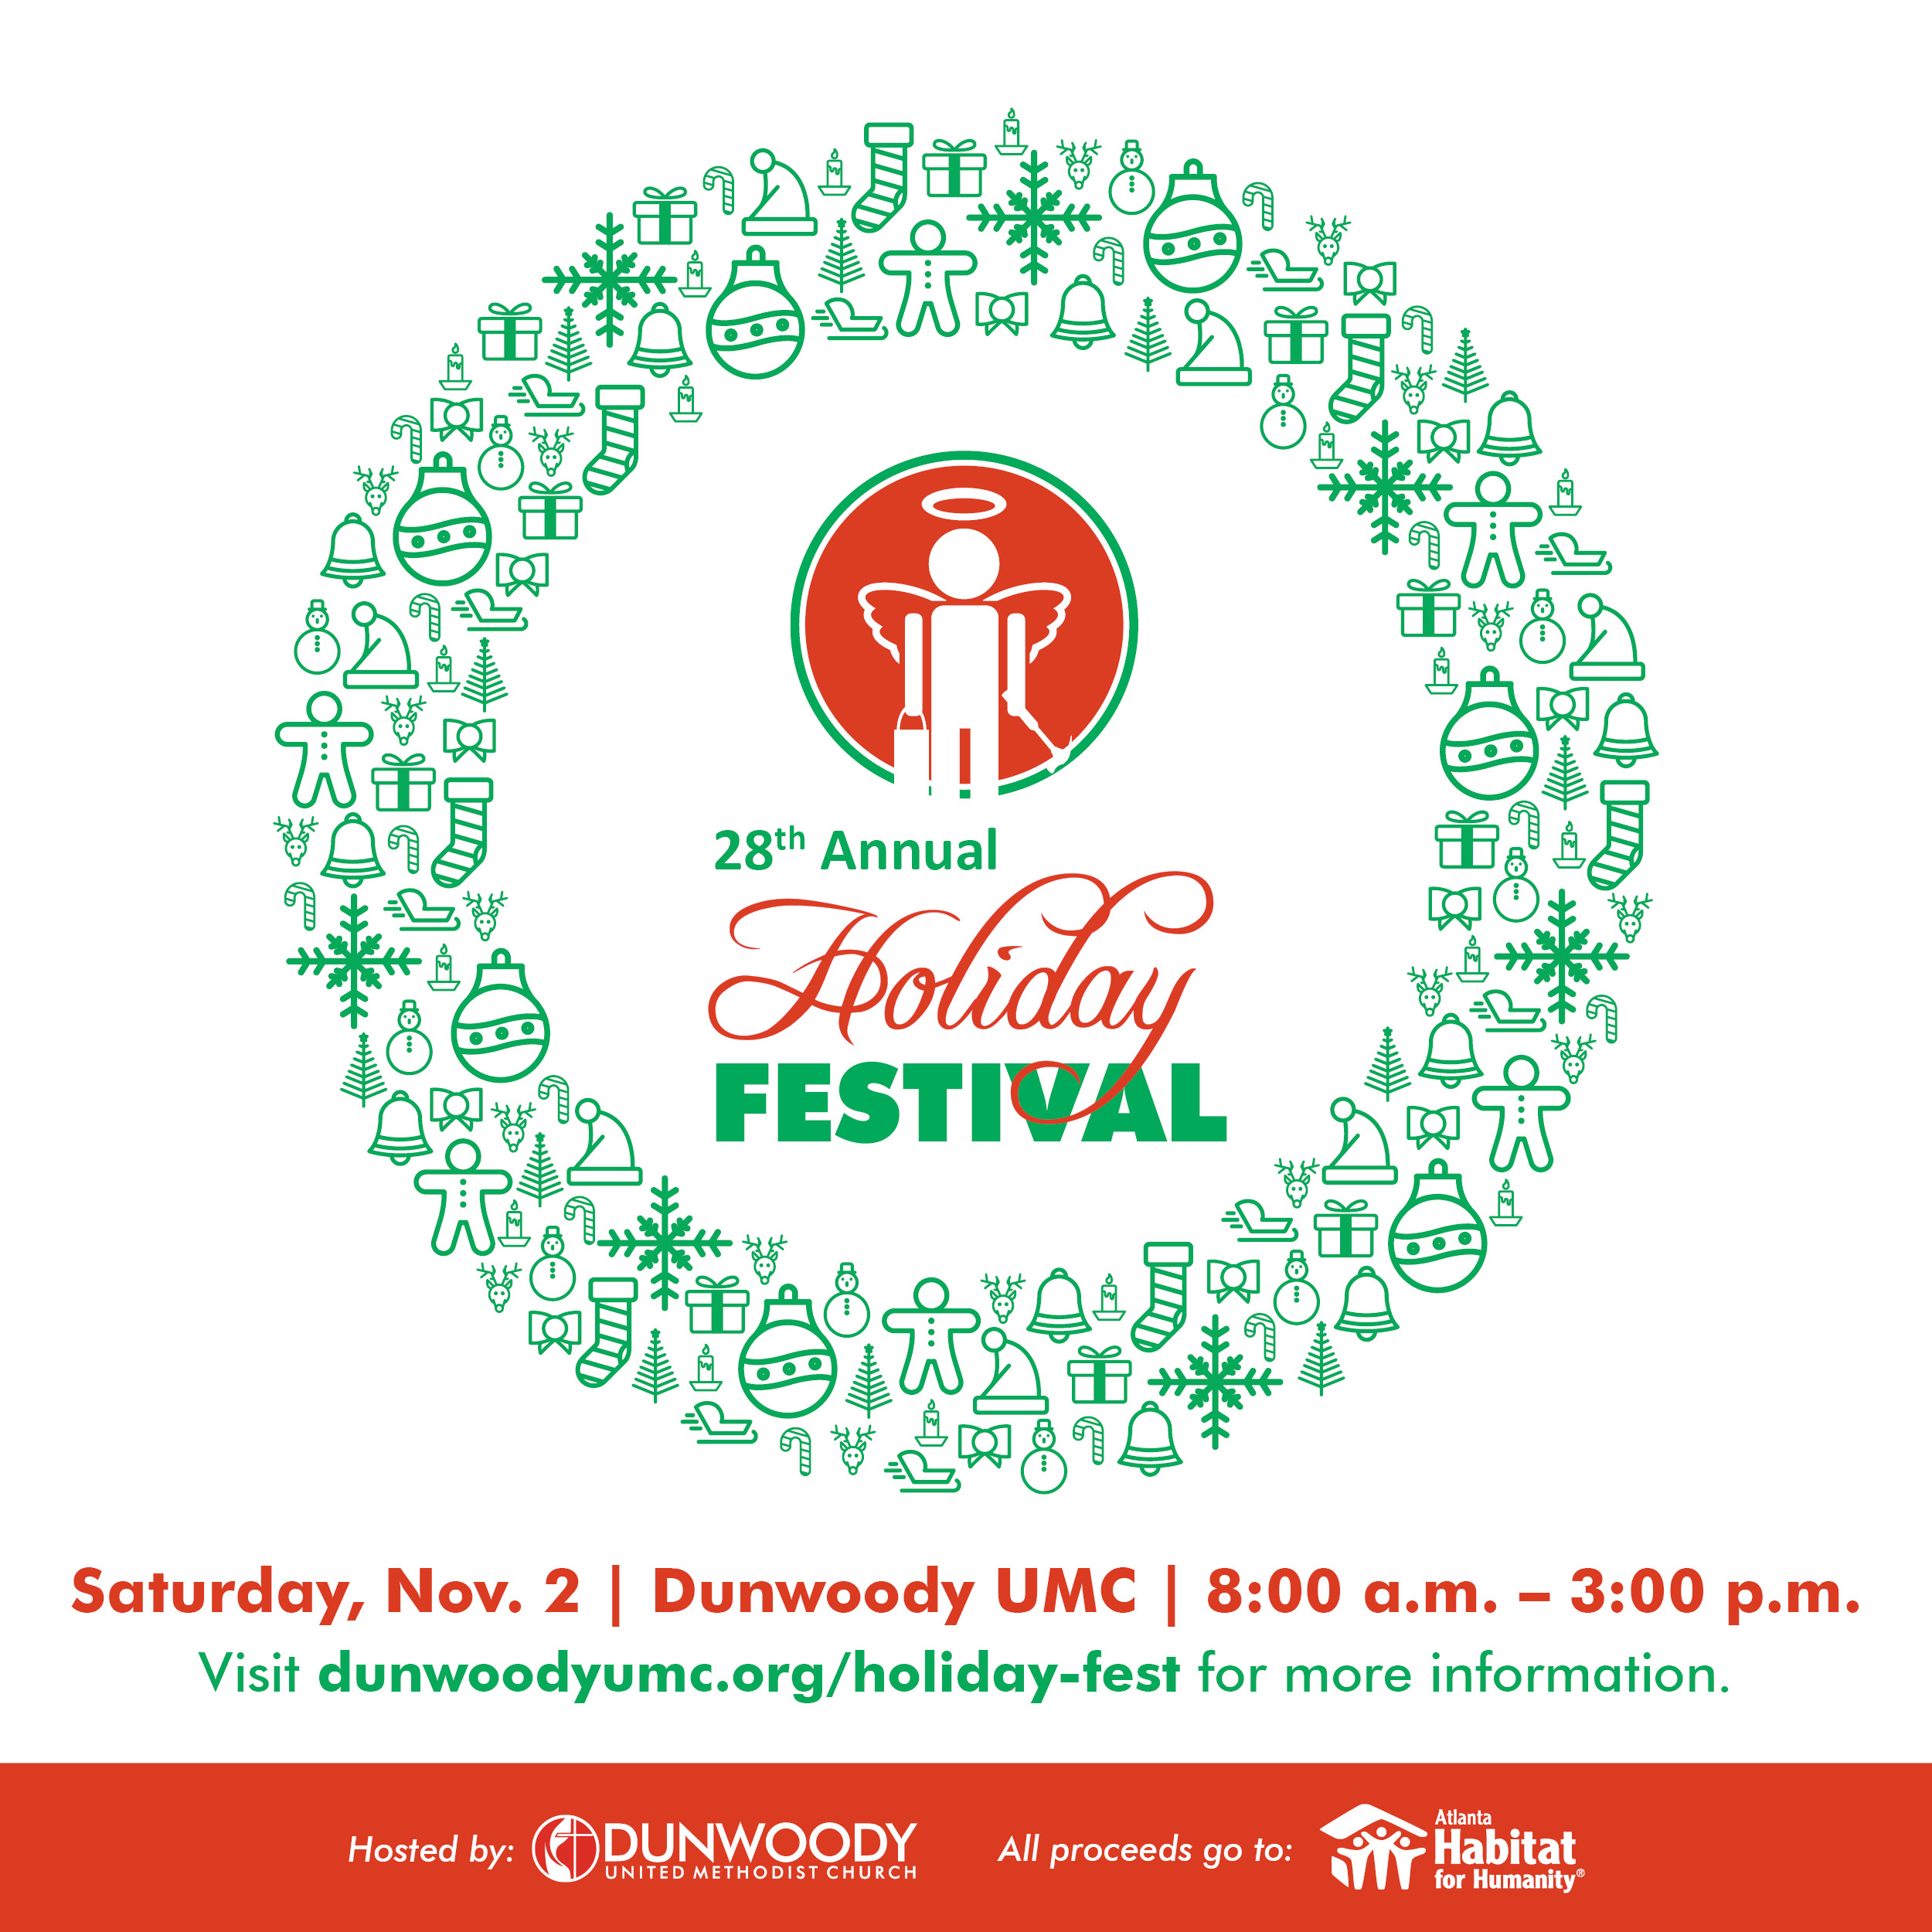 Dunwoody UMC's Annual Holiday Festival